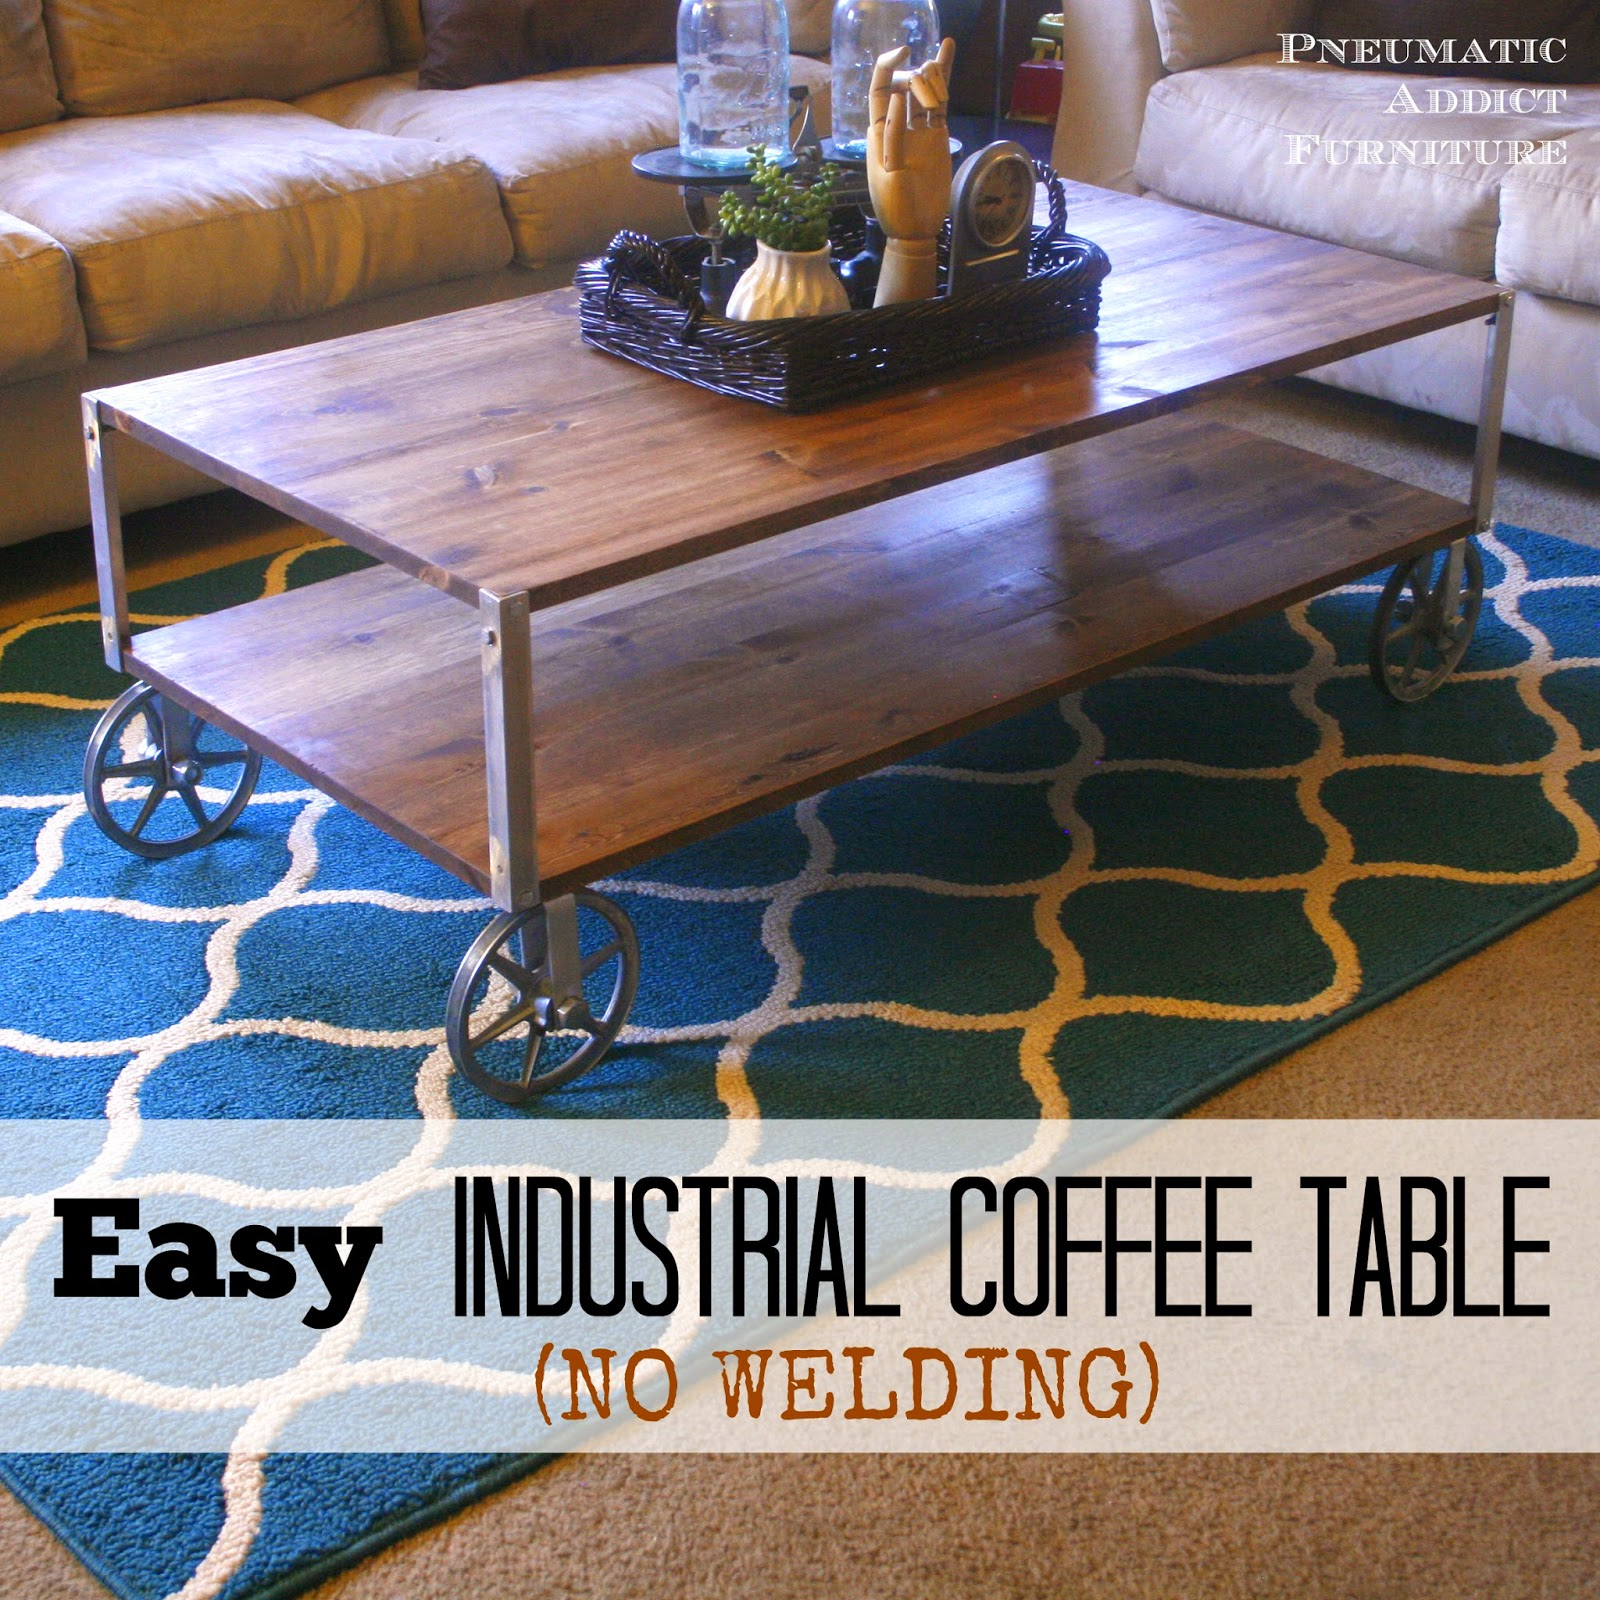 pneumatic addict : easy industrial coffee table (no welding!)